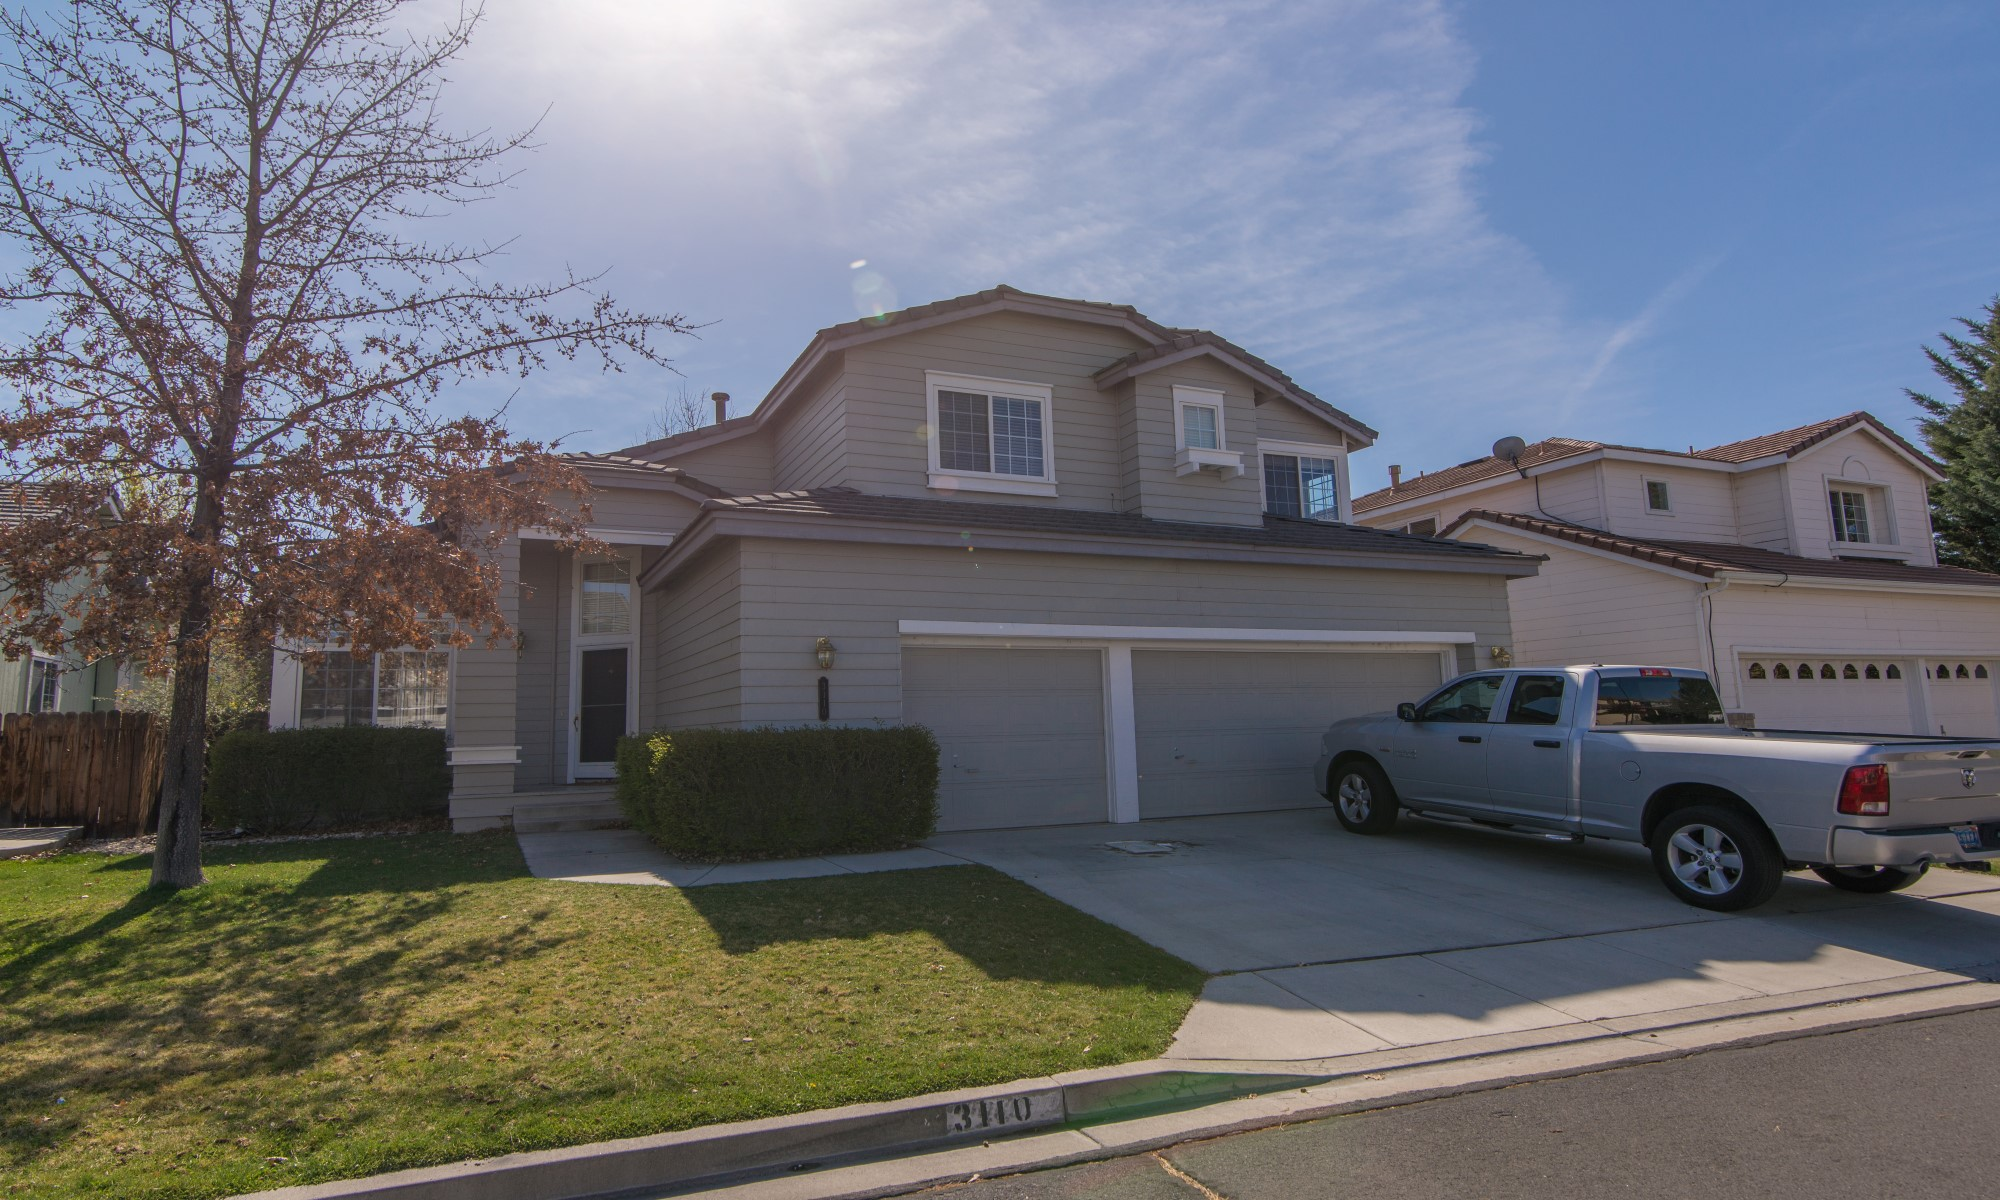 Single Family Home for Sale at 3110 Fairwood Drive Reno, Nevada 89521 United States